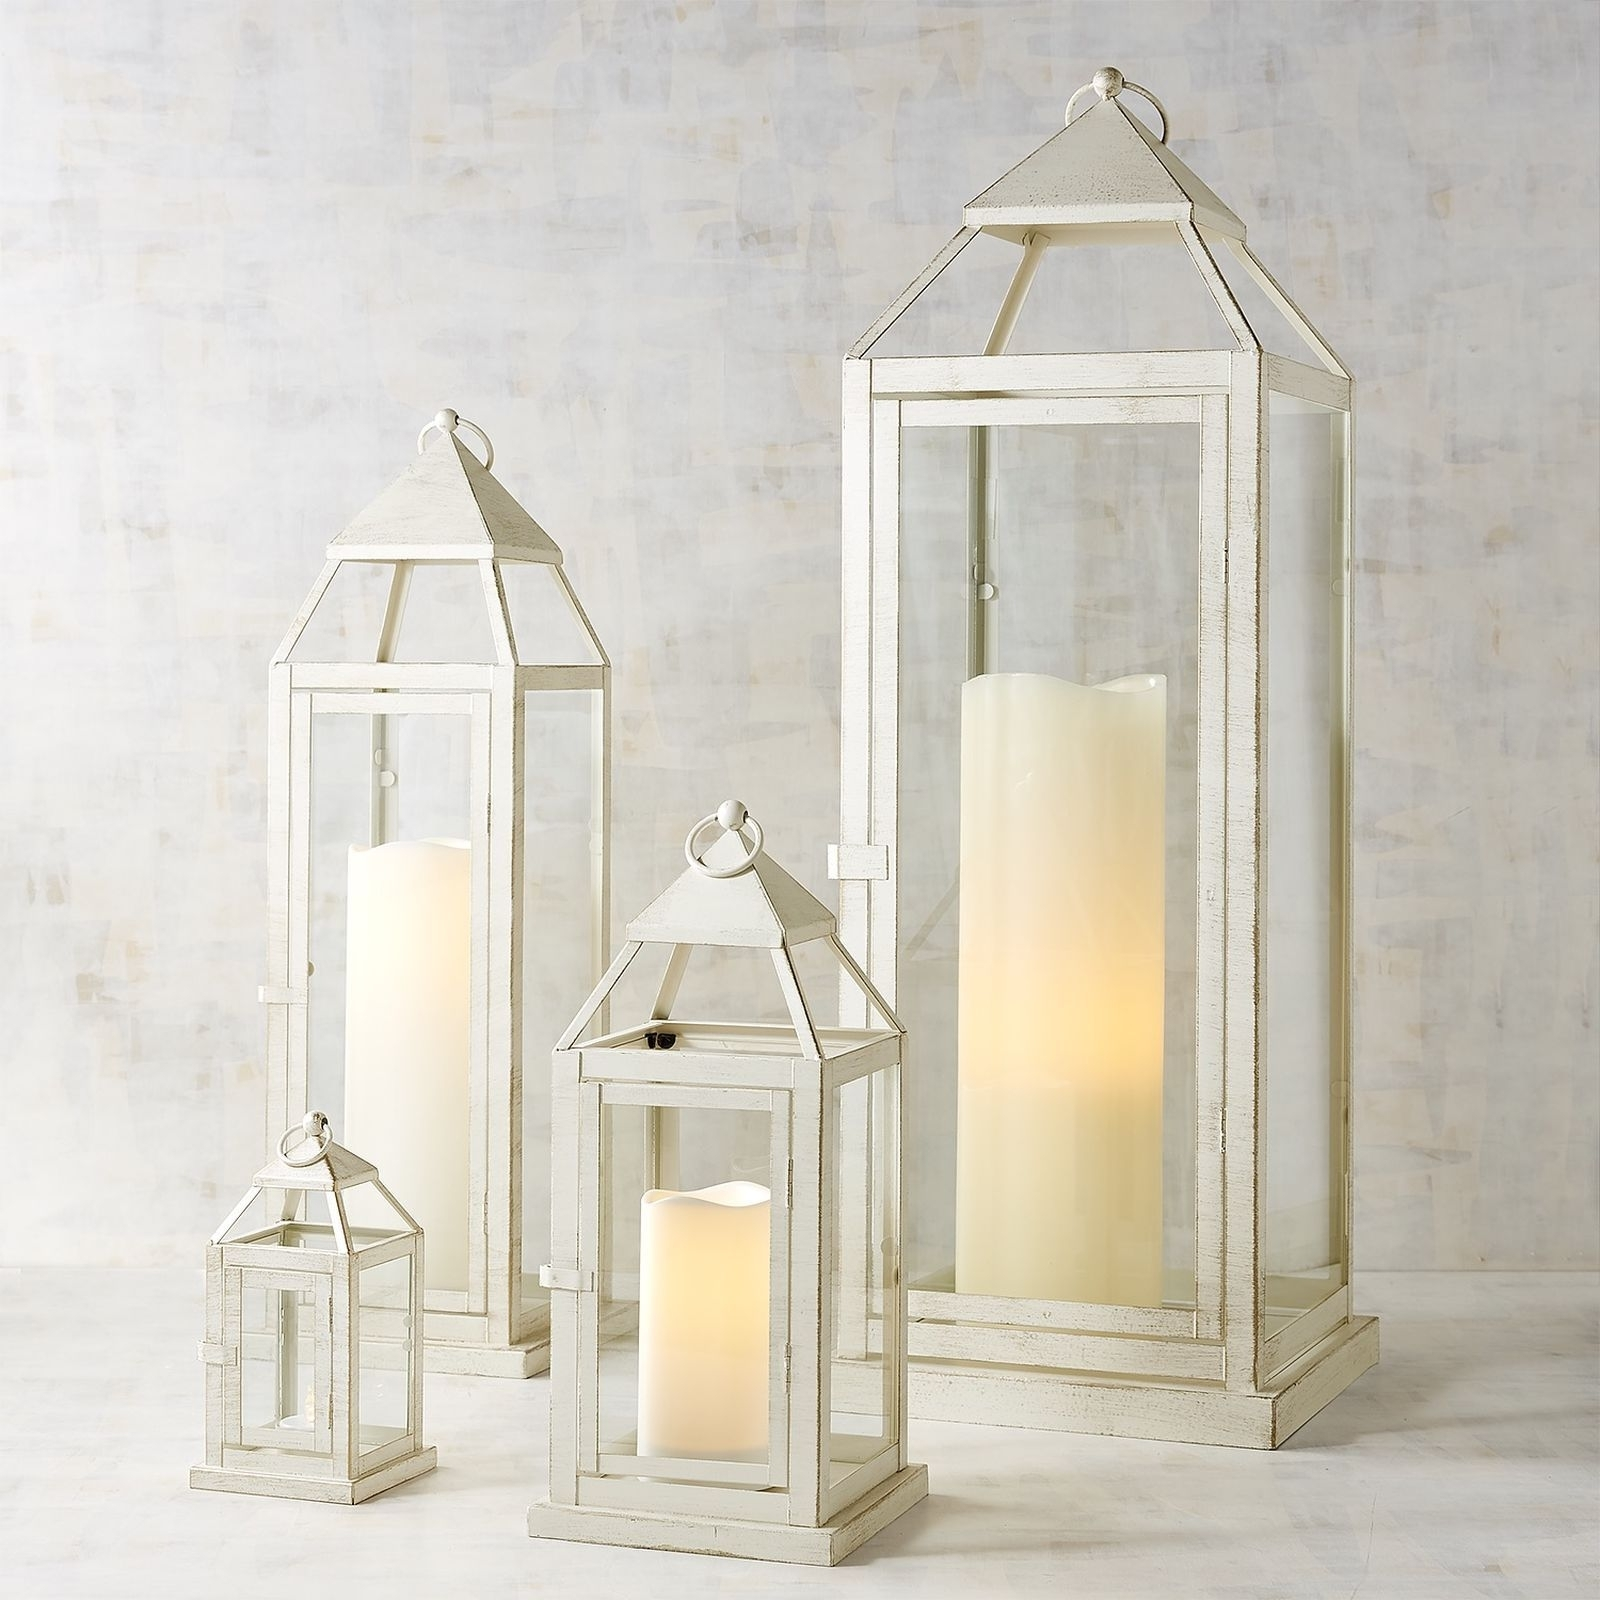 Well Liked Rust Proof Outdoor Lanterns Intended For Landen White Metal Lanterns (View 20 of 20)